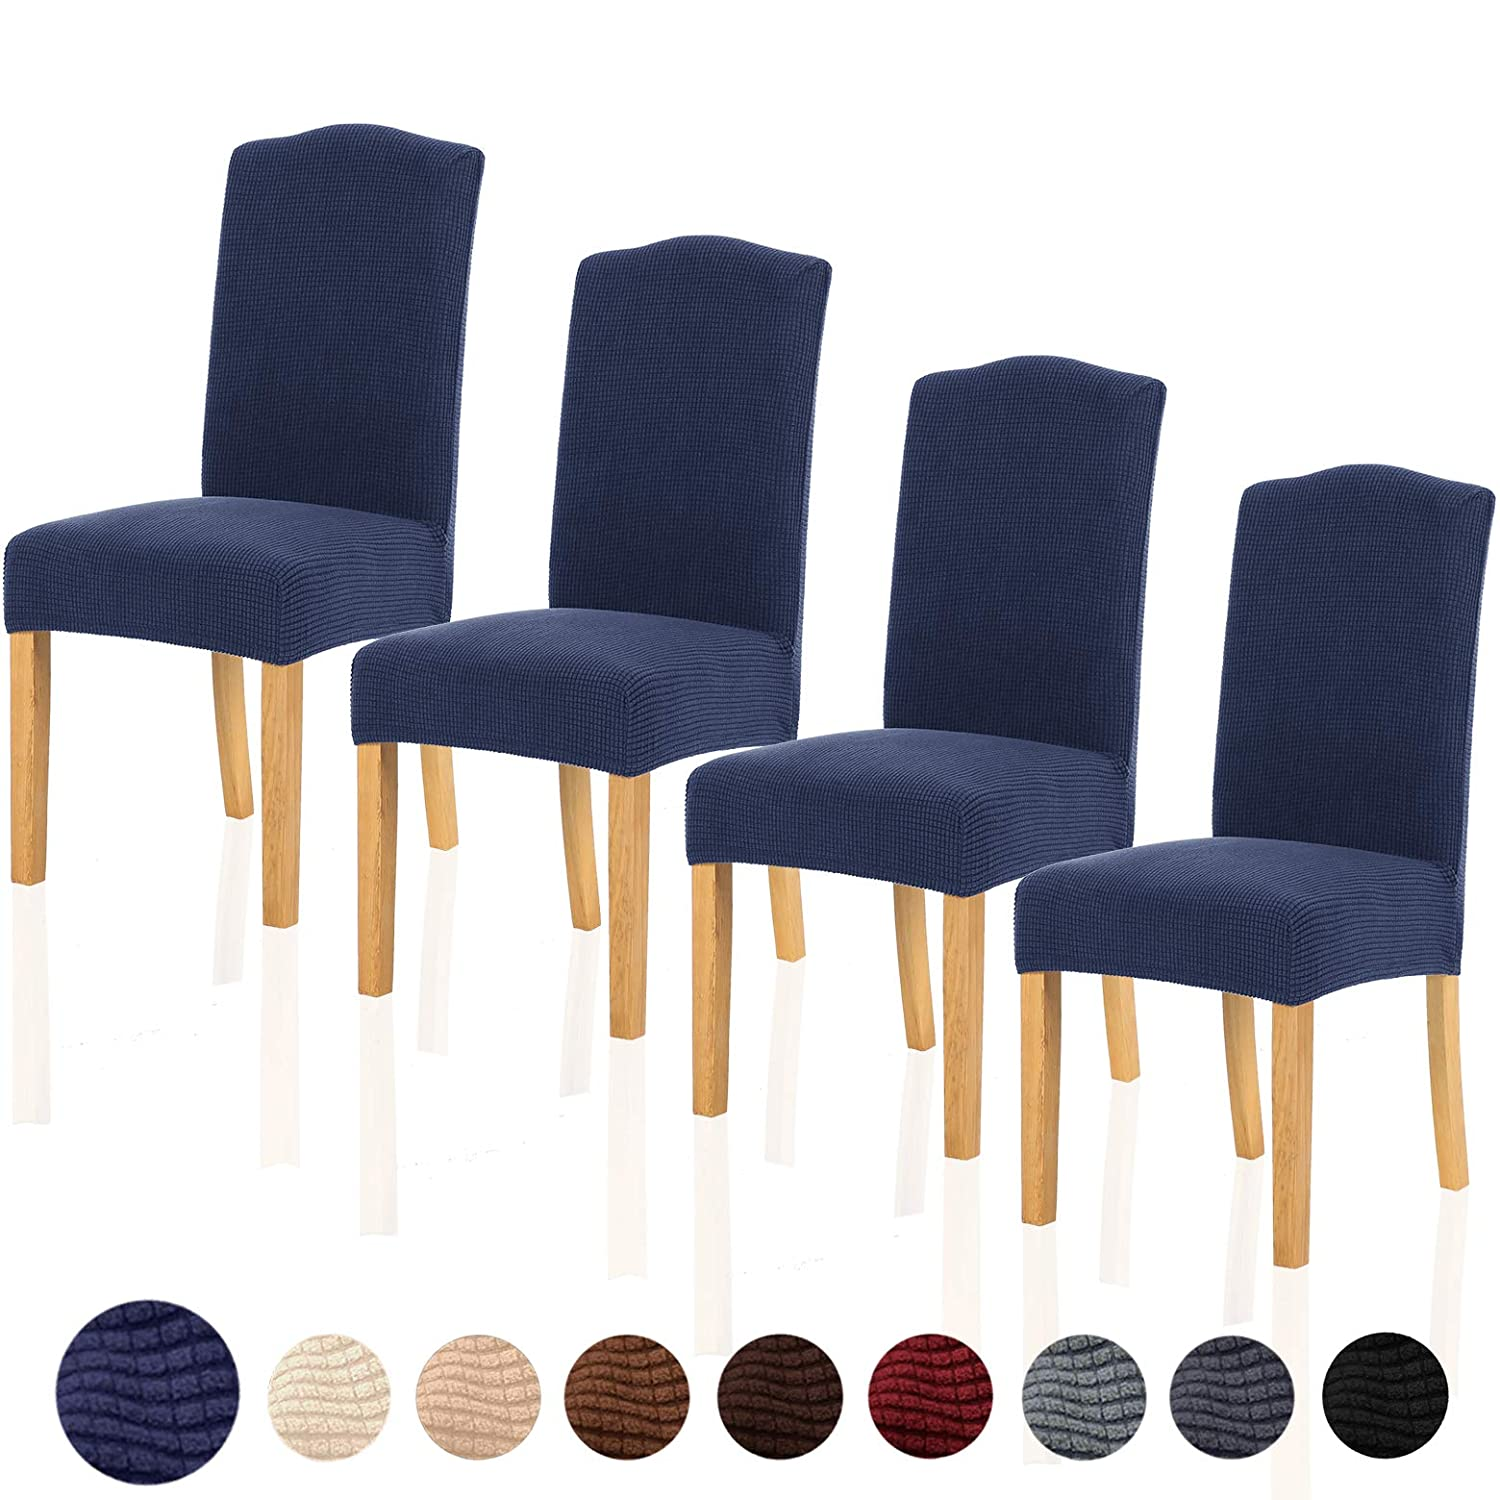 TIANSHU Stretch Chair Cover for Home Decor Dining Chair Slipcover (4 Pack, Navy Blue)